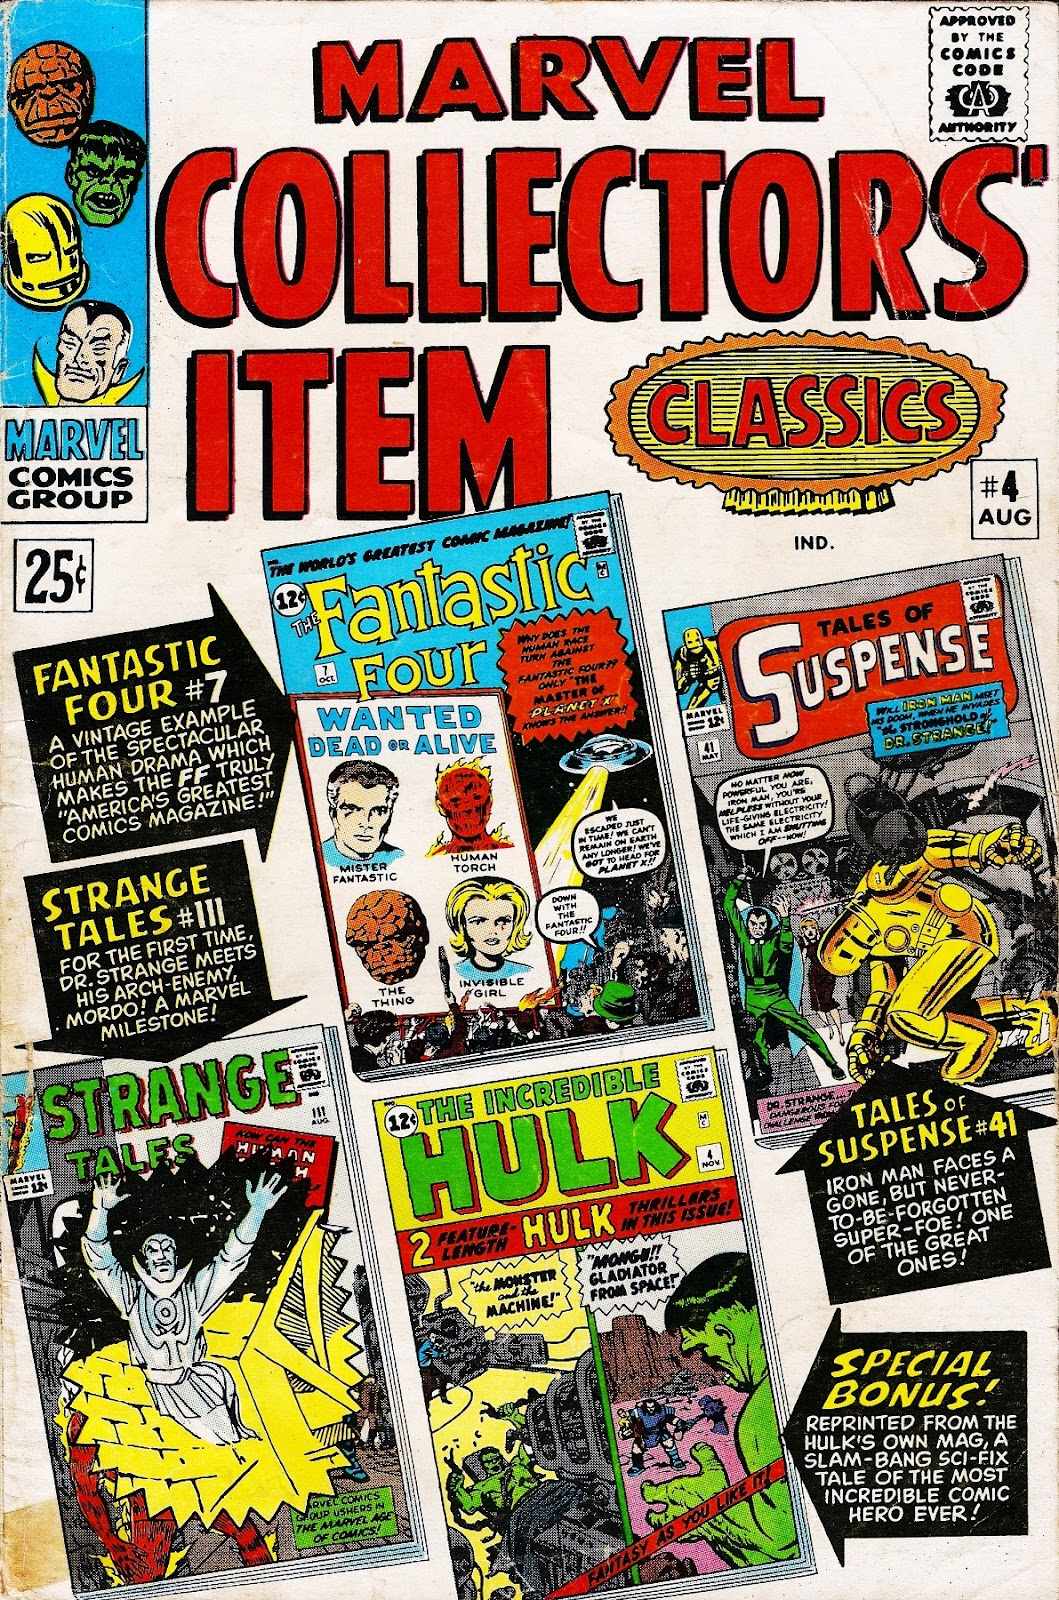 Marvel Collectors Item Classics 4 Page 1